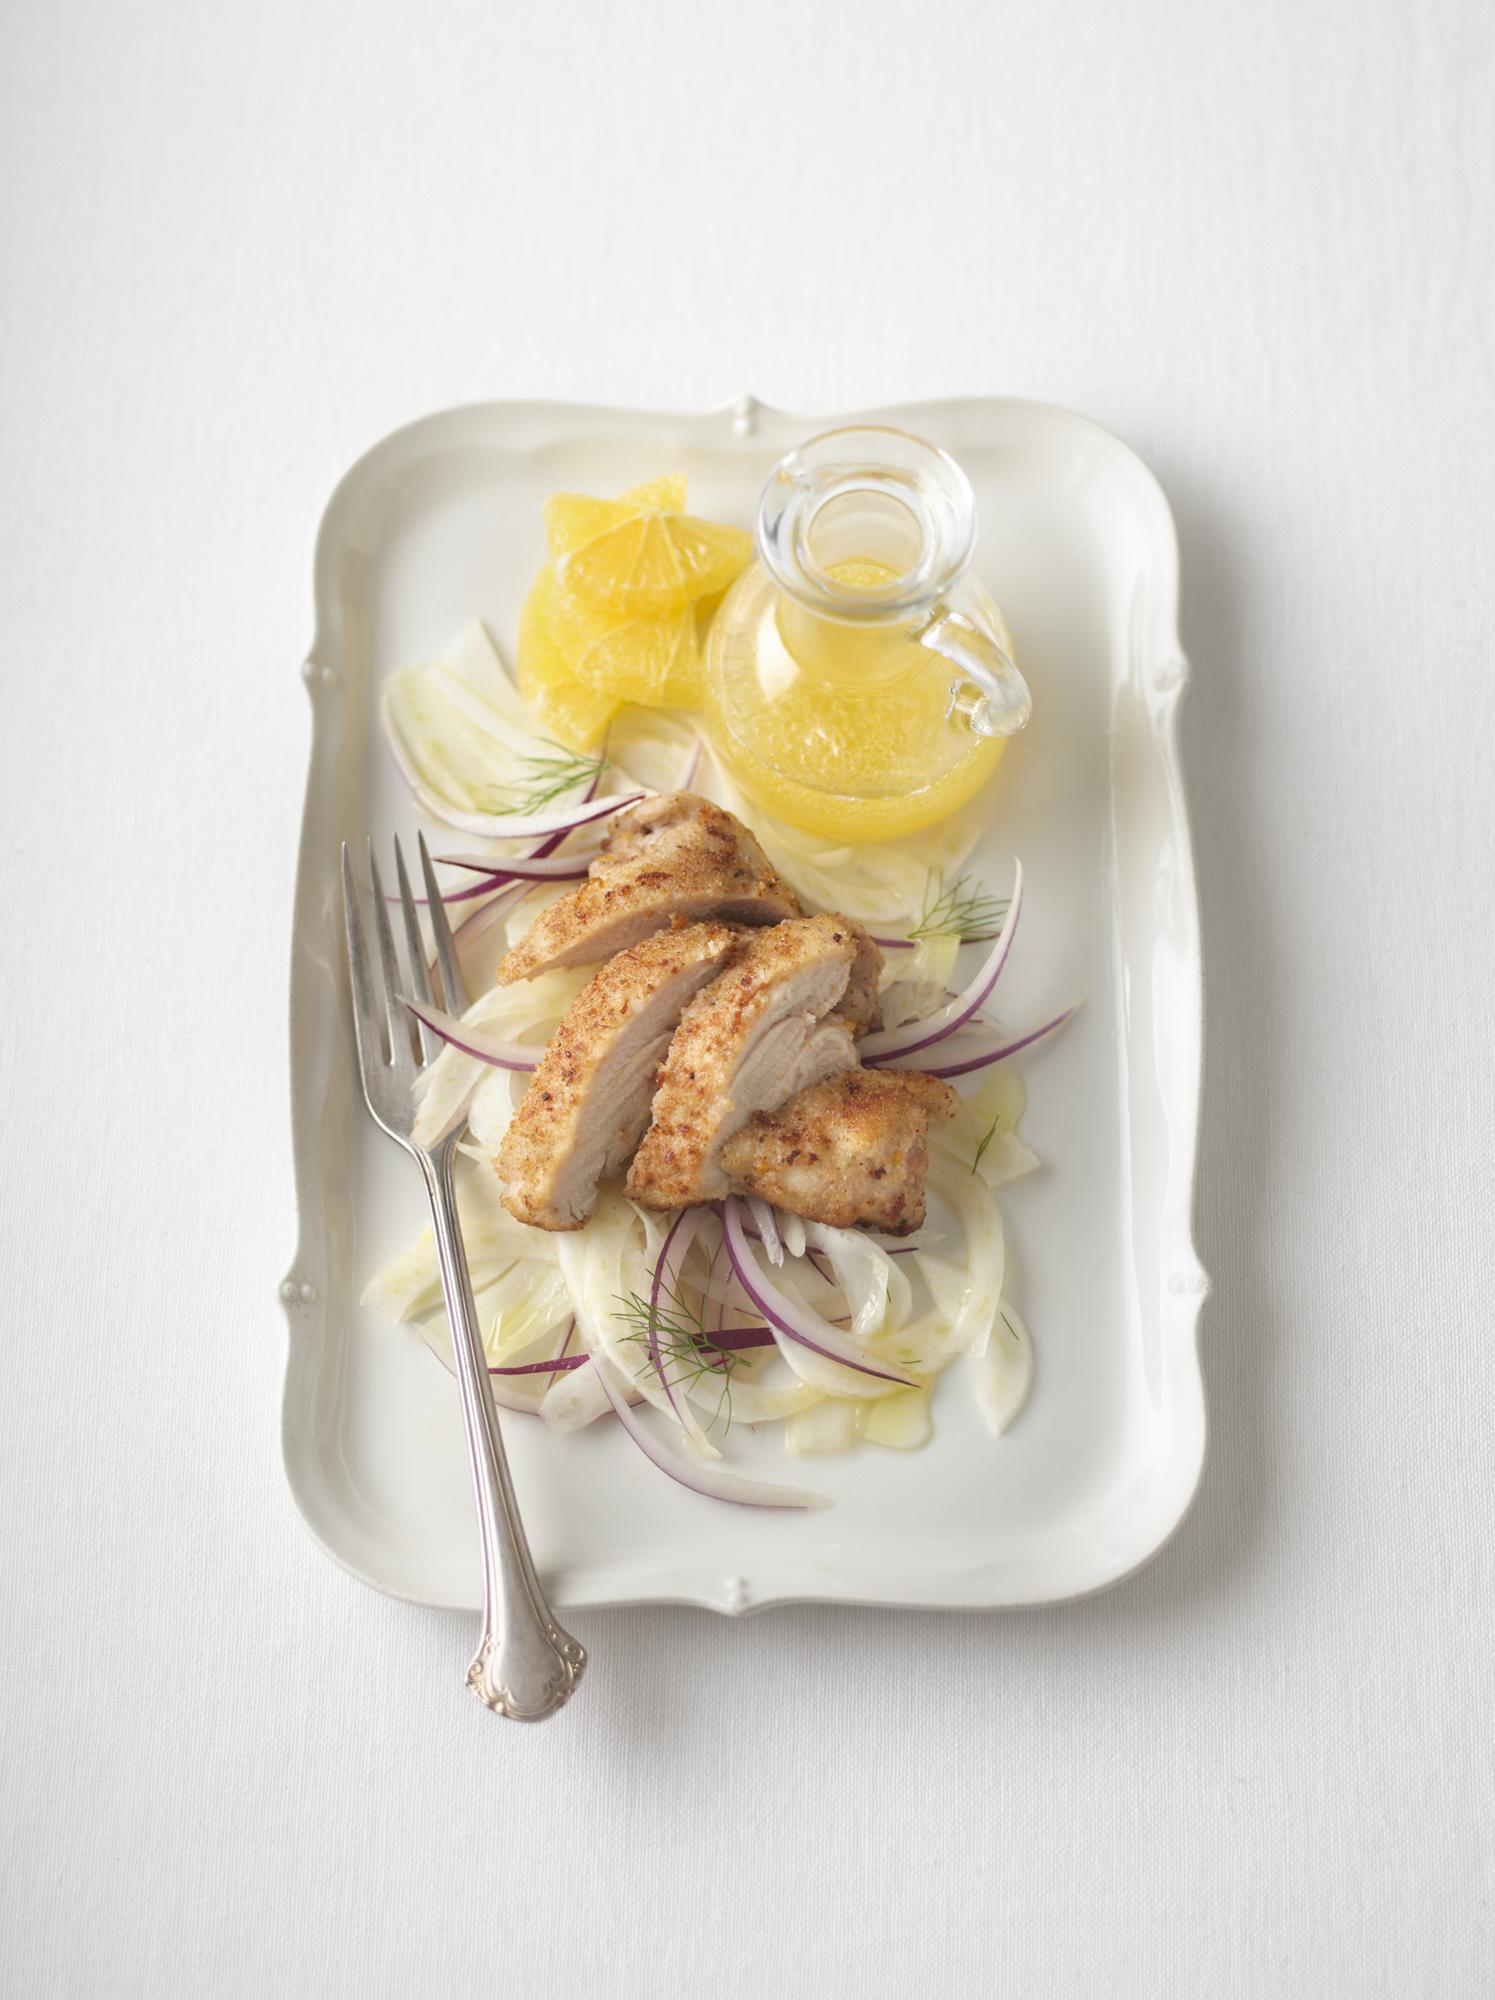 Pan-Fried Orange Chicken with Fennel & Onion Salad